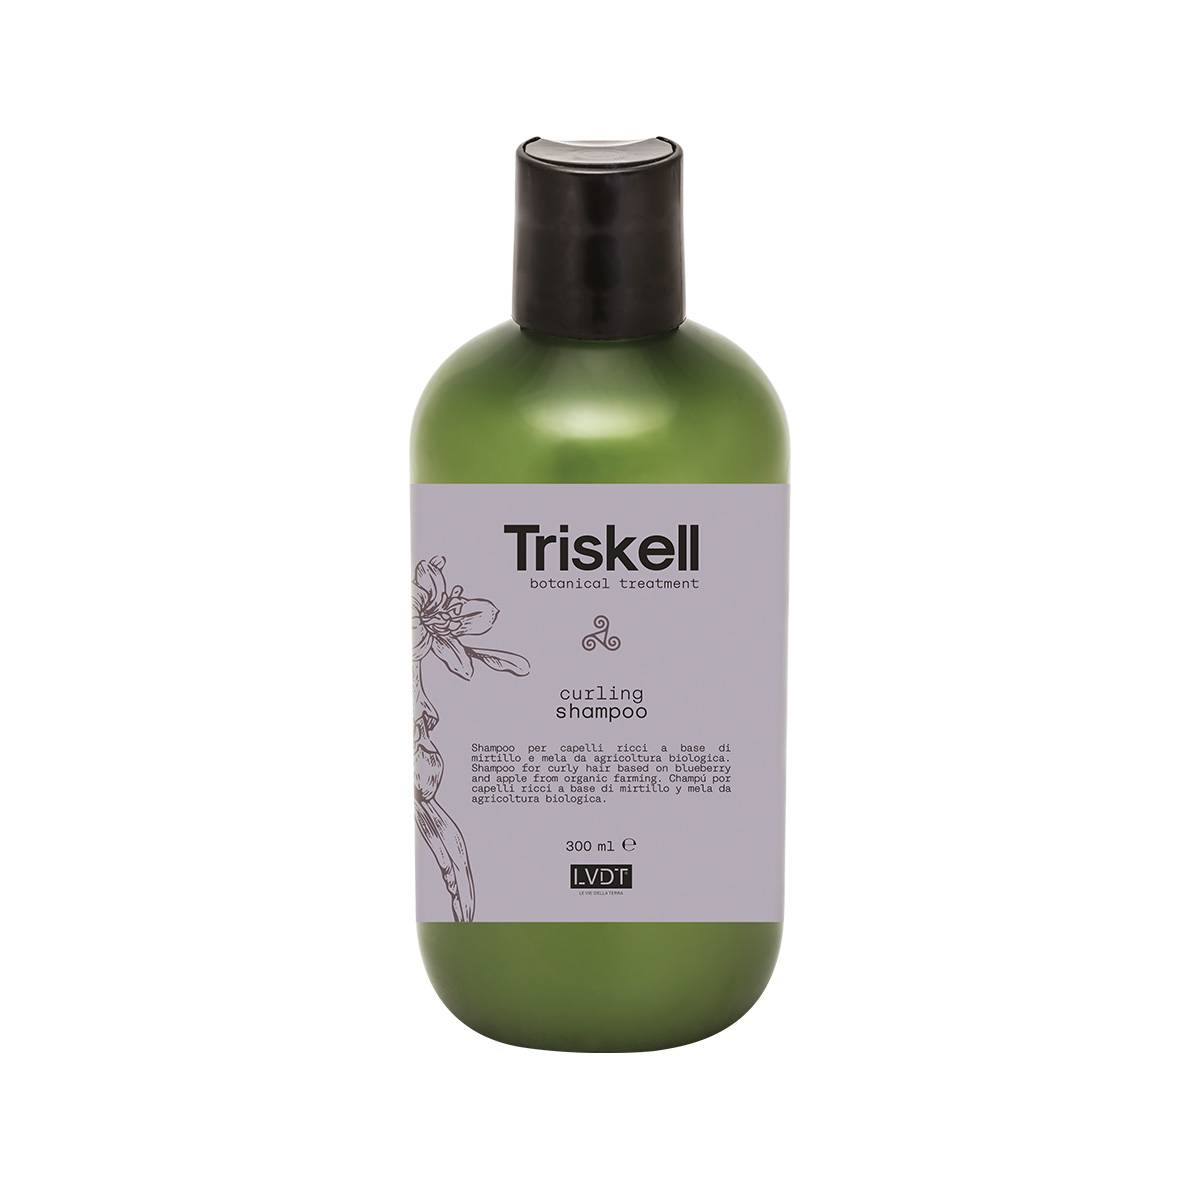 Curling Shampoo 300ml Triskell Botanical Treatment